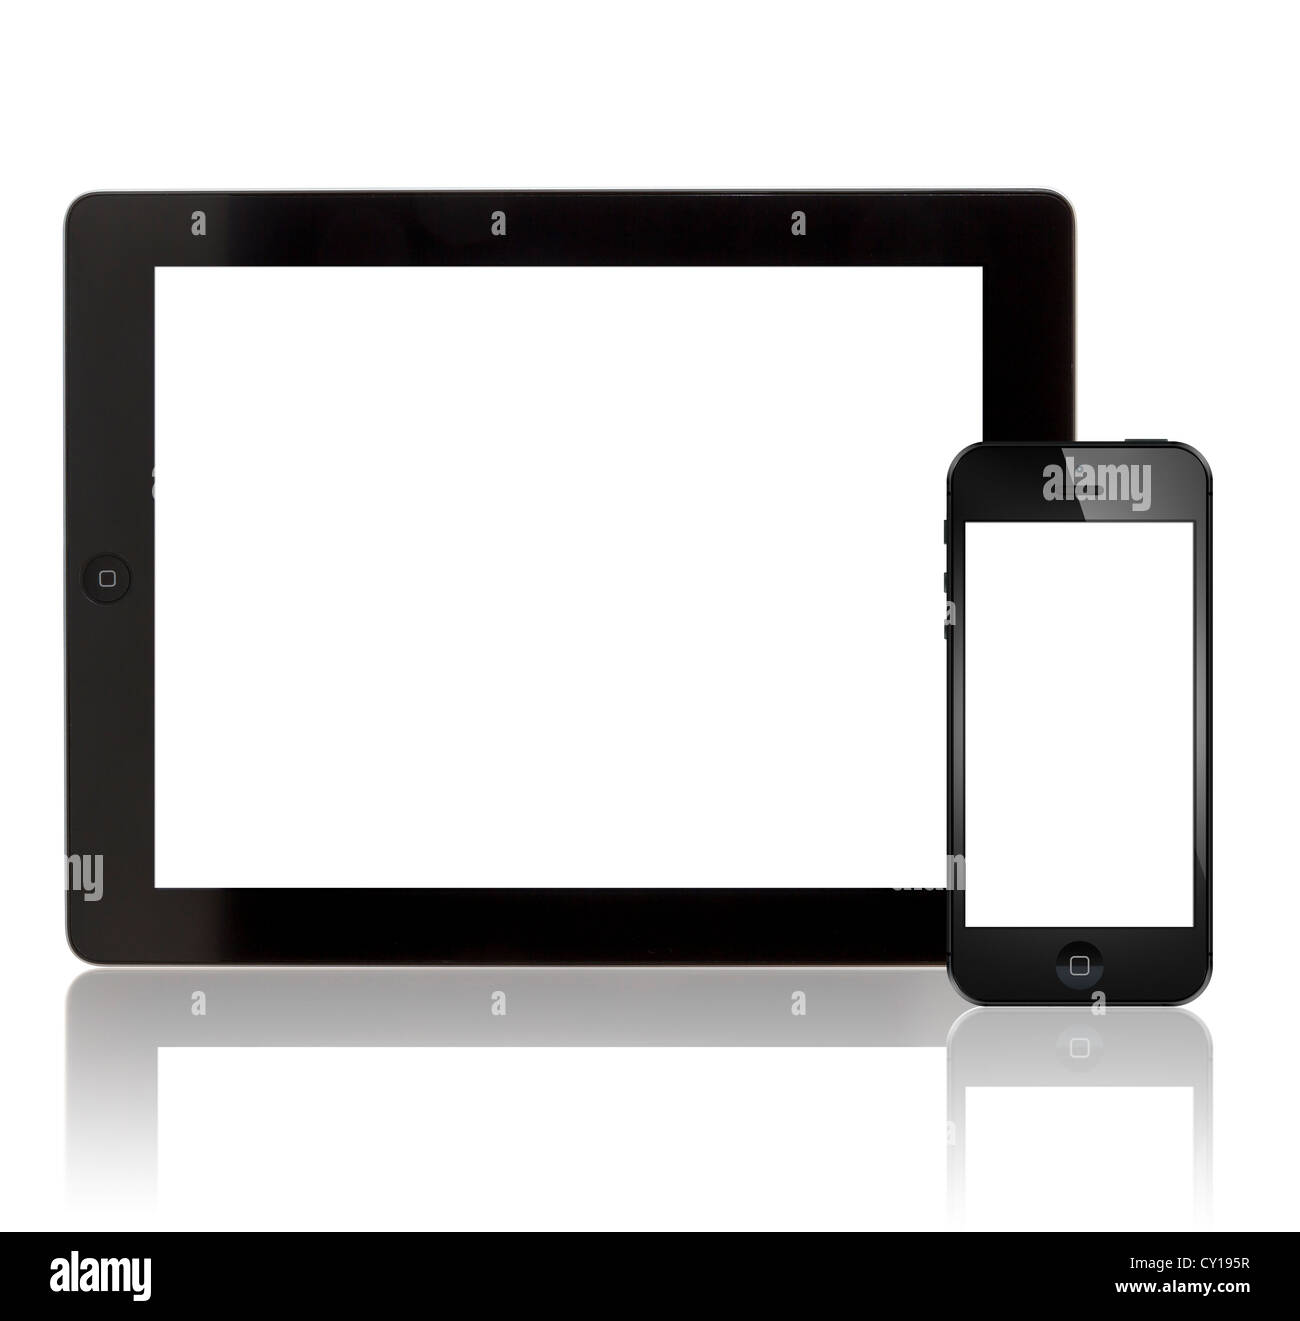 ipad and iPhone 5 with blank screen - Stock Image